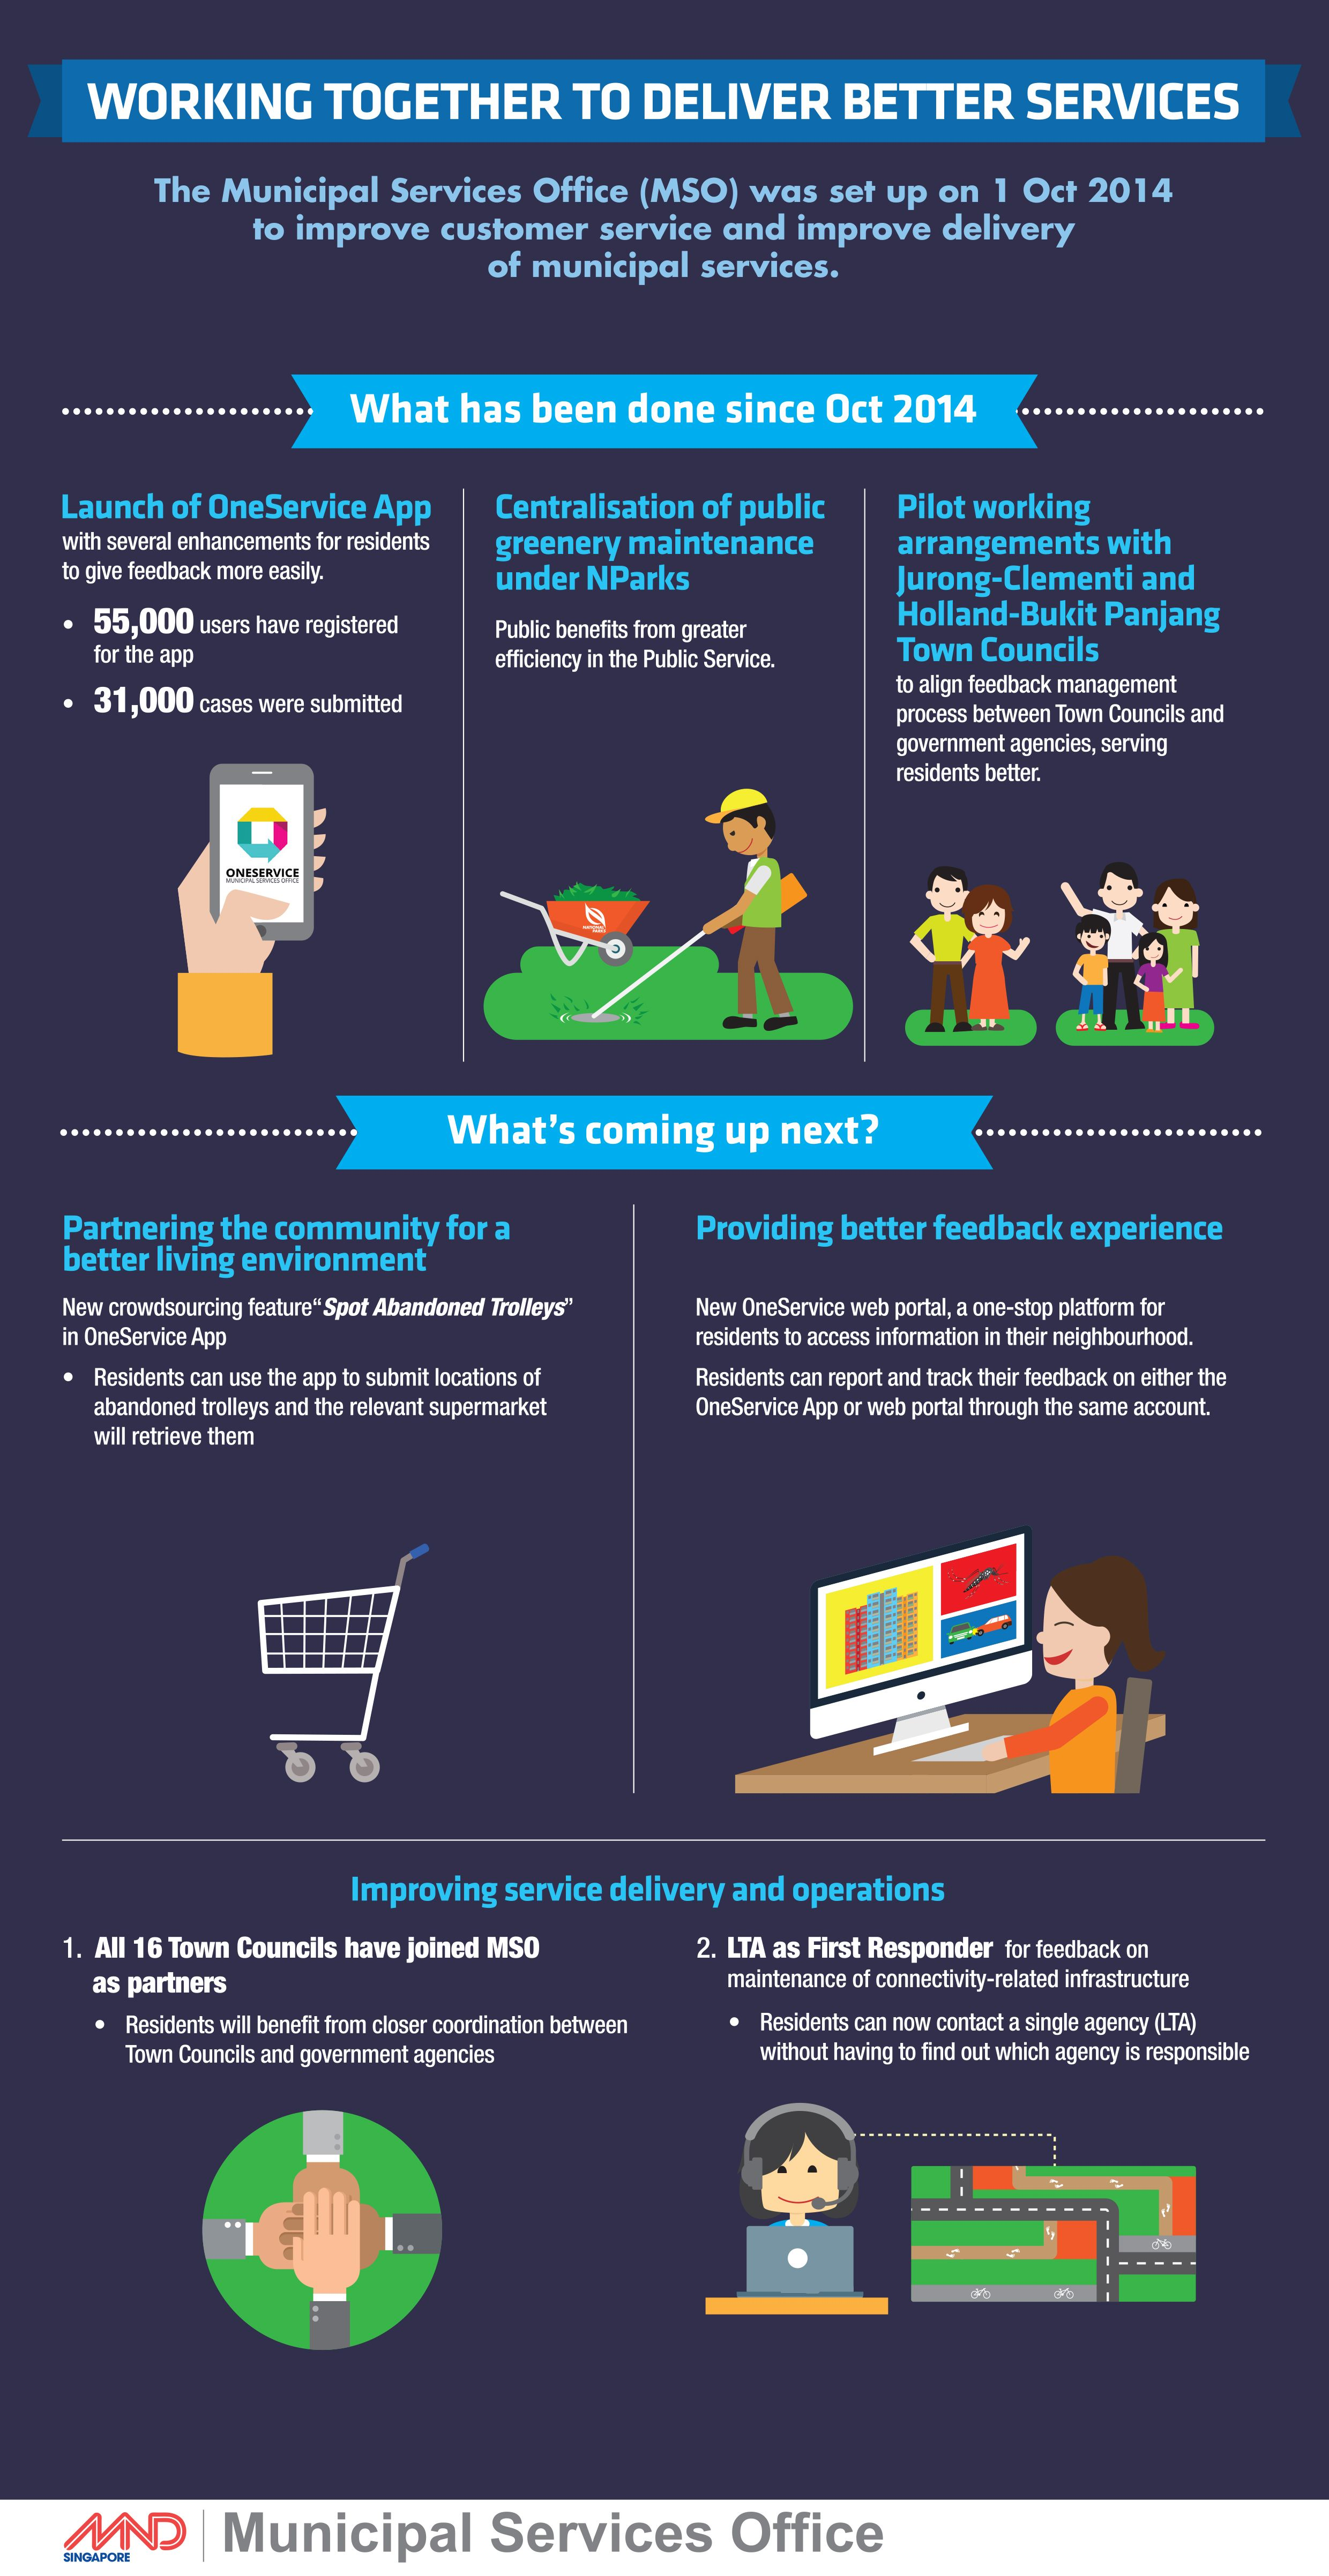 Pin by MND Singapore on Infographics Infographic